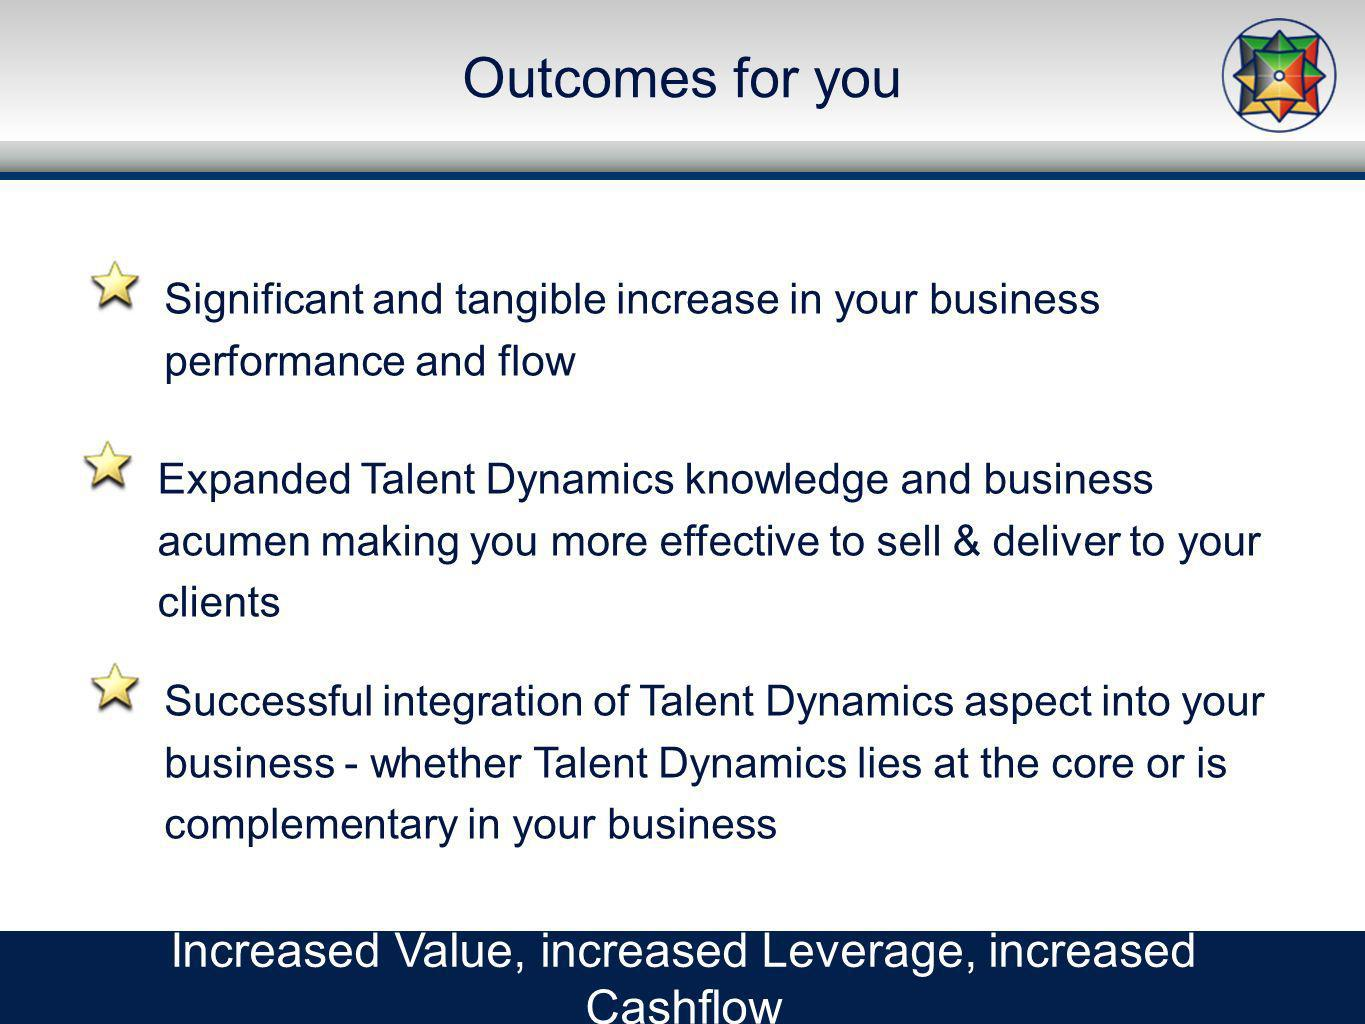 Outcomes for you Increased Value, increased Leverage, increased Cashflow Expanded Talent Dynamics knowledge and business acumen making you more effect